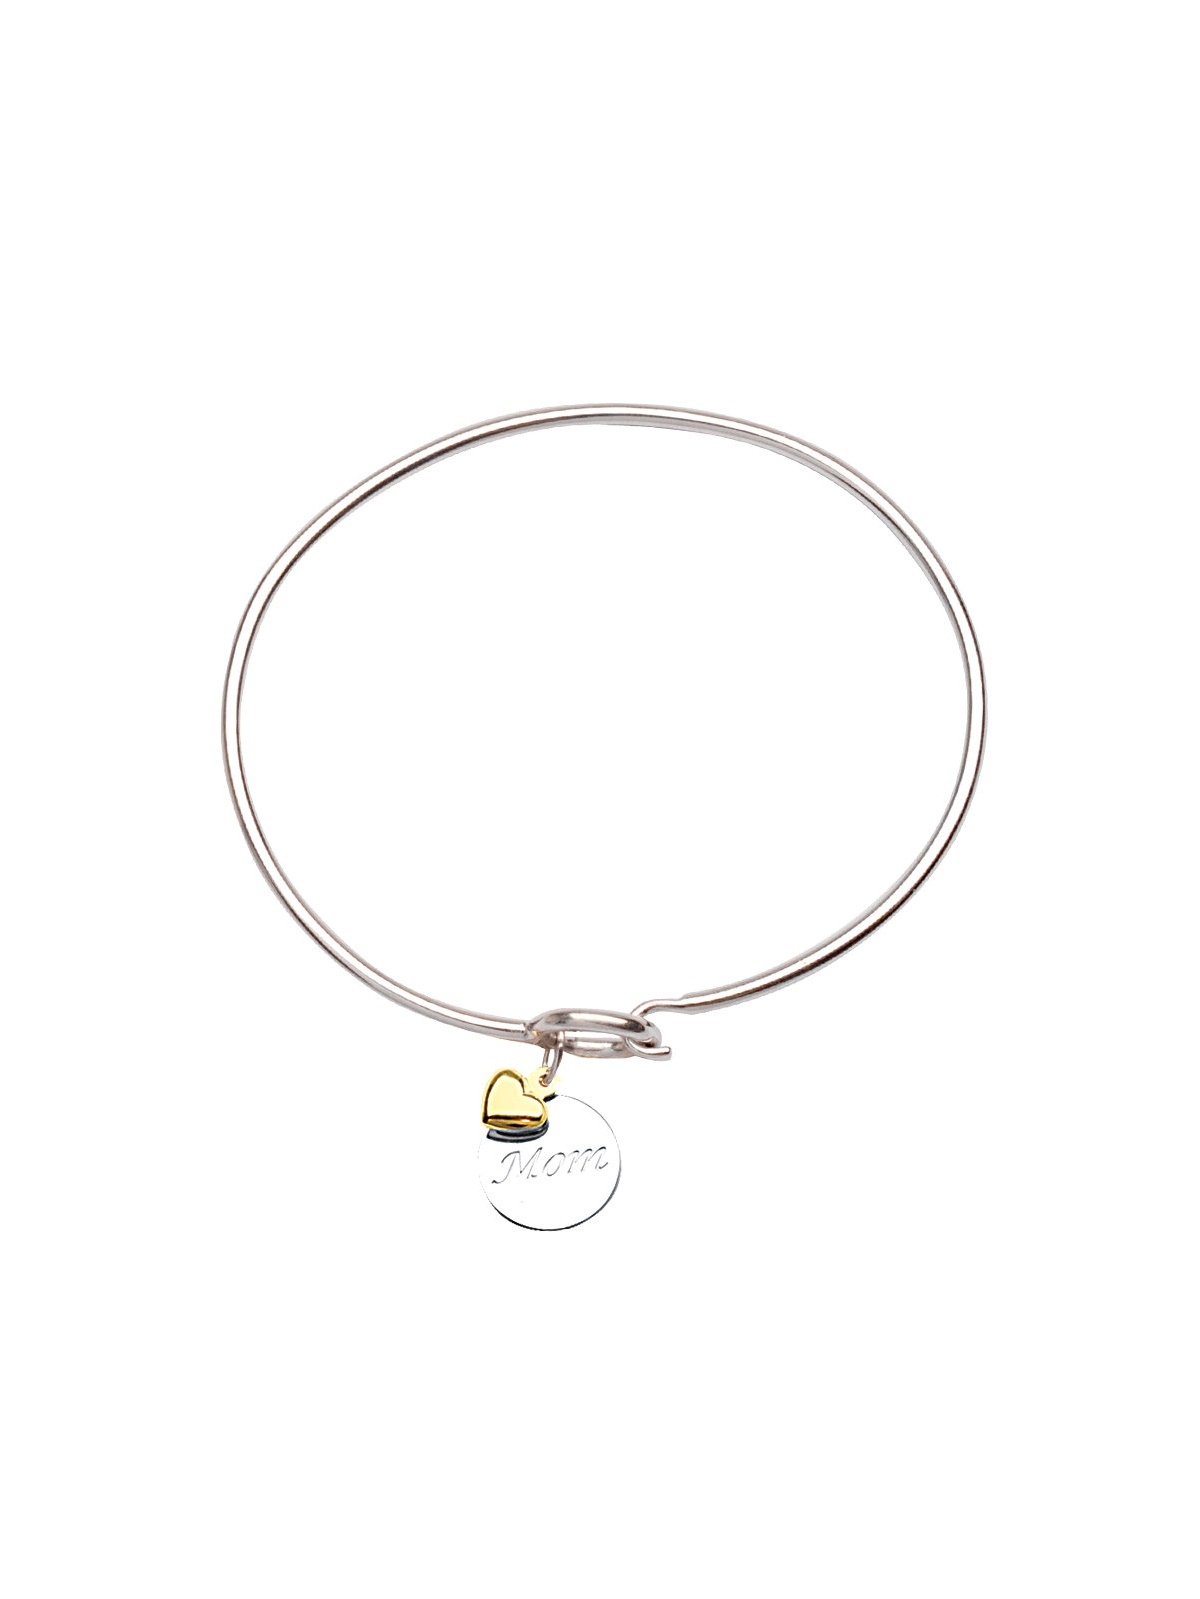 Bangle Bracelet with Engraved Mom Tag and 14k Gold Heart Charm Sterling Silver